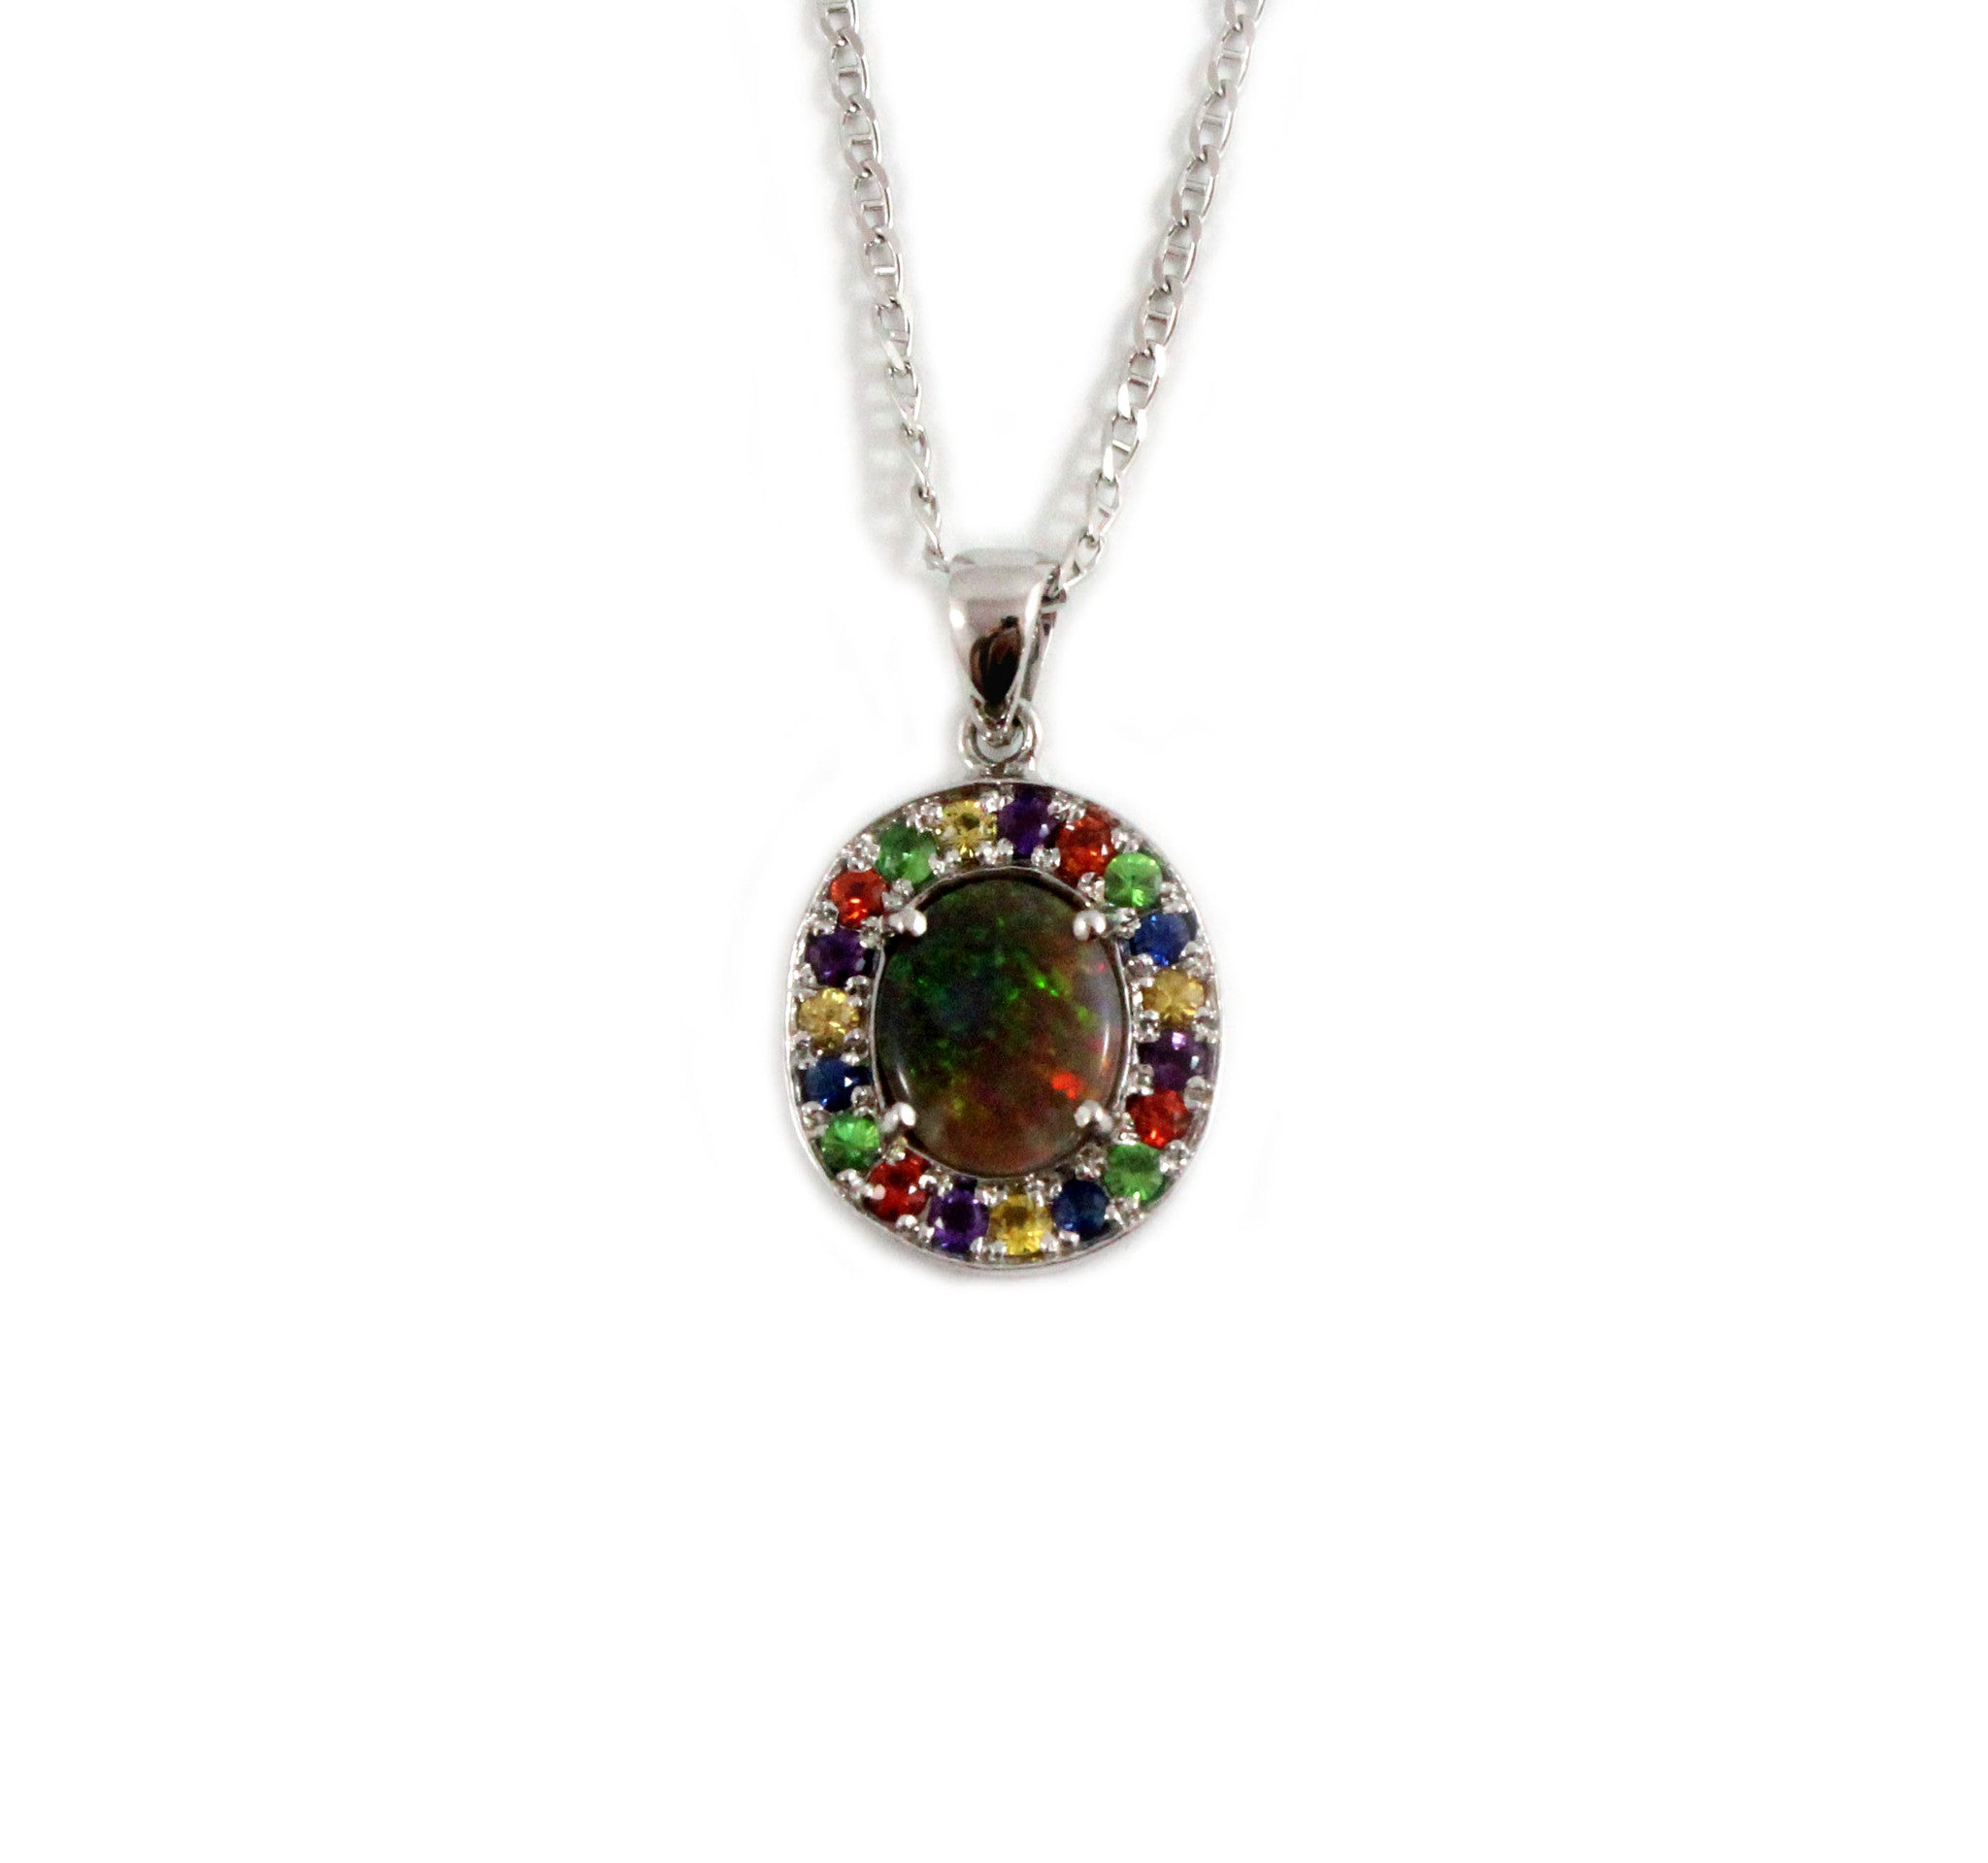 Australian opal fancy sapphires and amethyst halo white gold pendant necklace - Sarah Hughes - 2